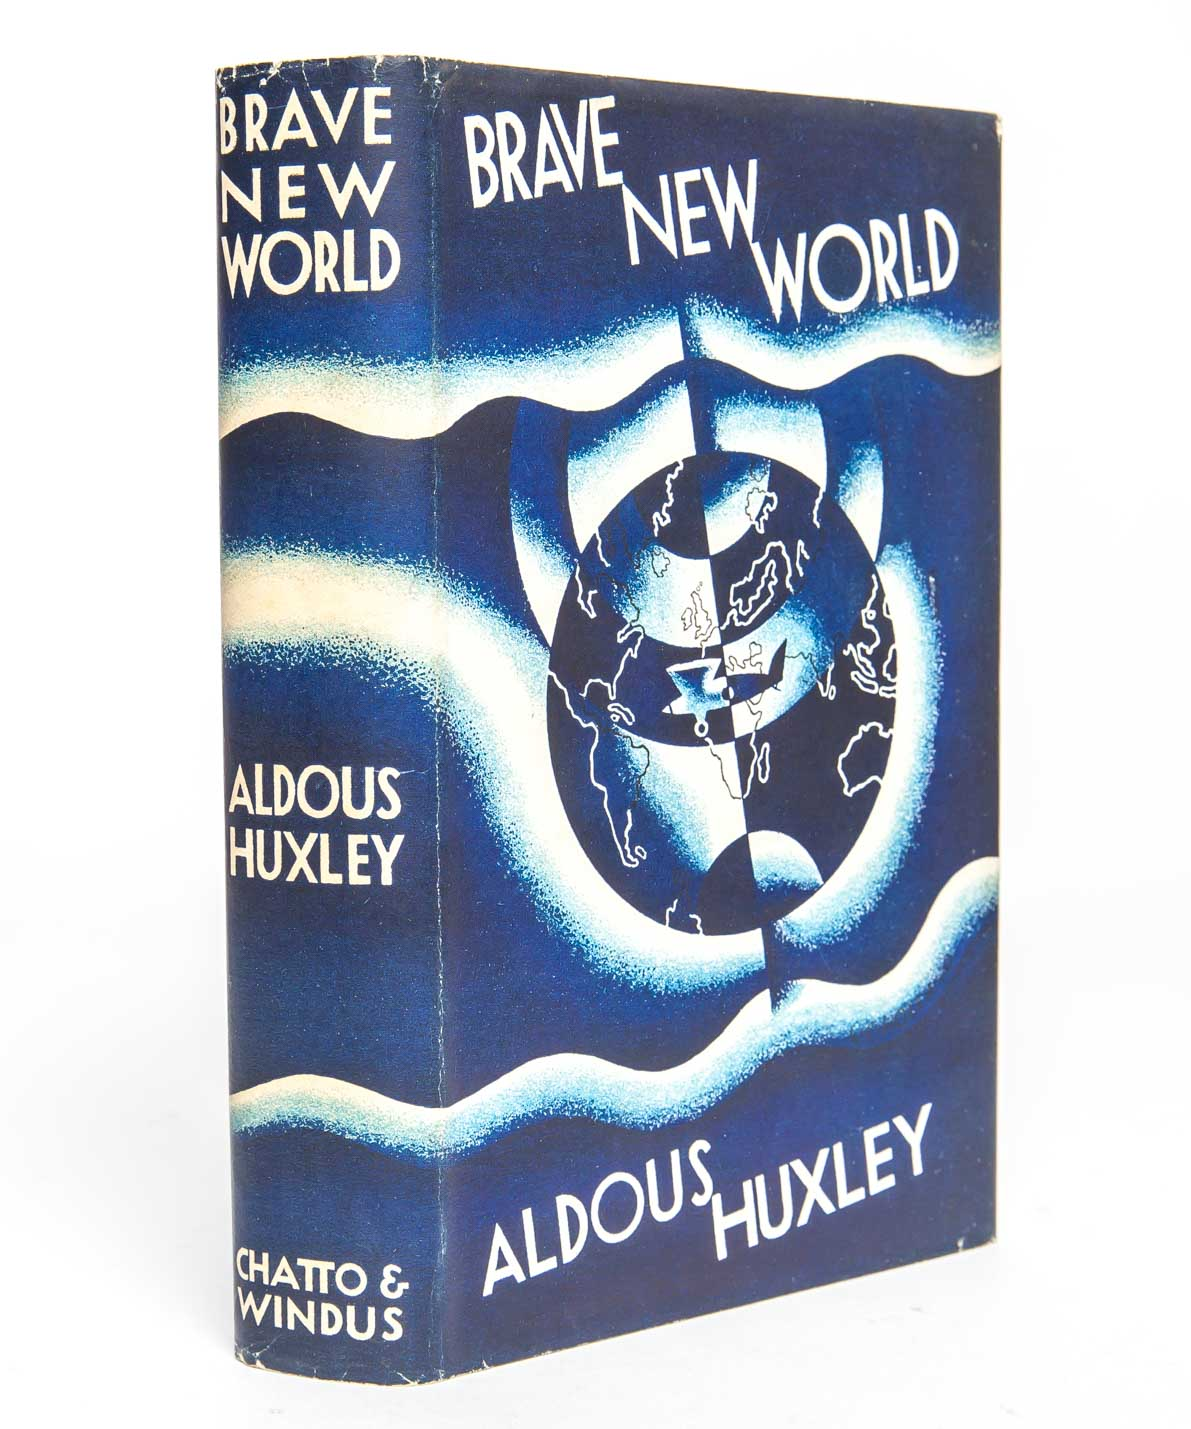 aldous huxley depicts a fictitious utopia in the brave new world Community, identity, stability is the motto of aldous huxley's utopian world state here everyone consumes daily grams of soma, to fight depression, babies are born in laboratories, and the most popular form of entertainment is a feelie, a movie that stimulates the senses of sight, hearing, and touch.